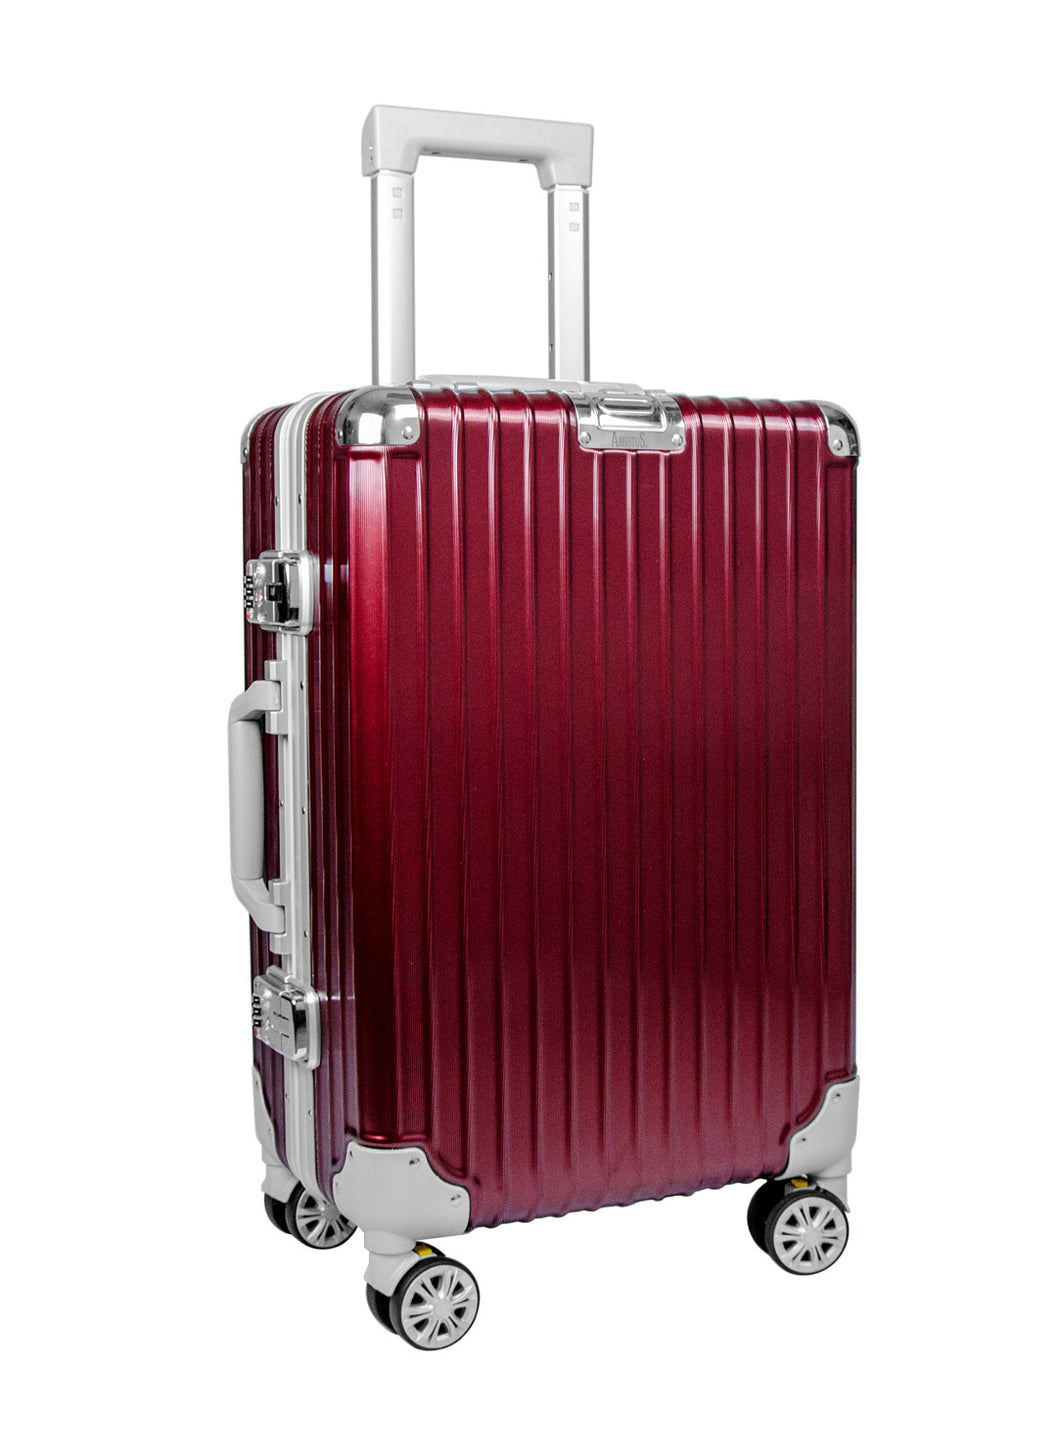 AB-518 Red Cabin Suitcase - Arbutus New York